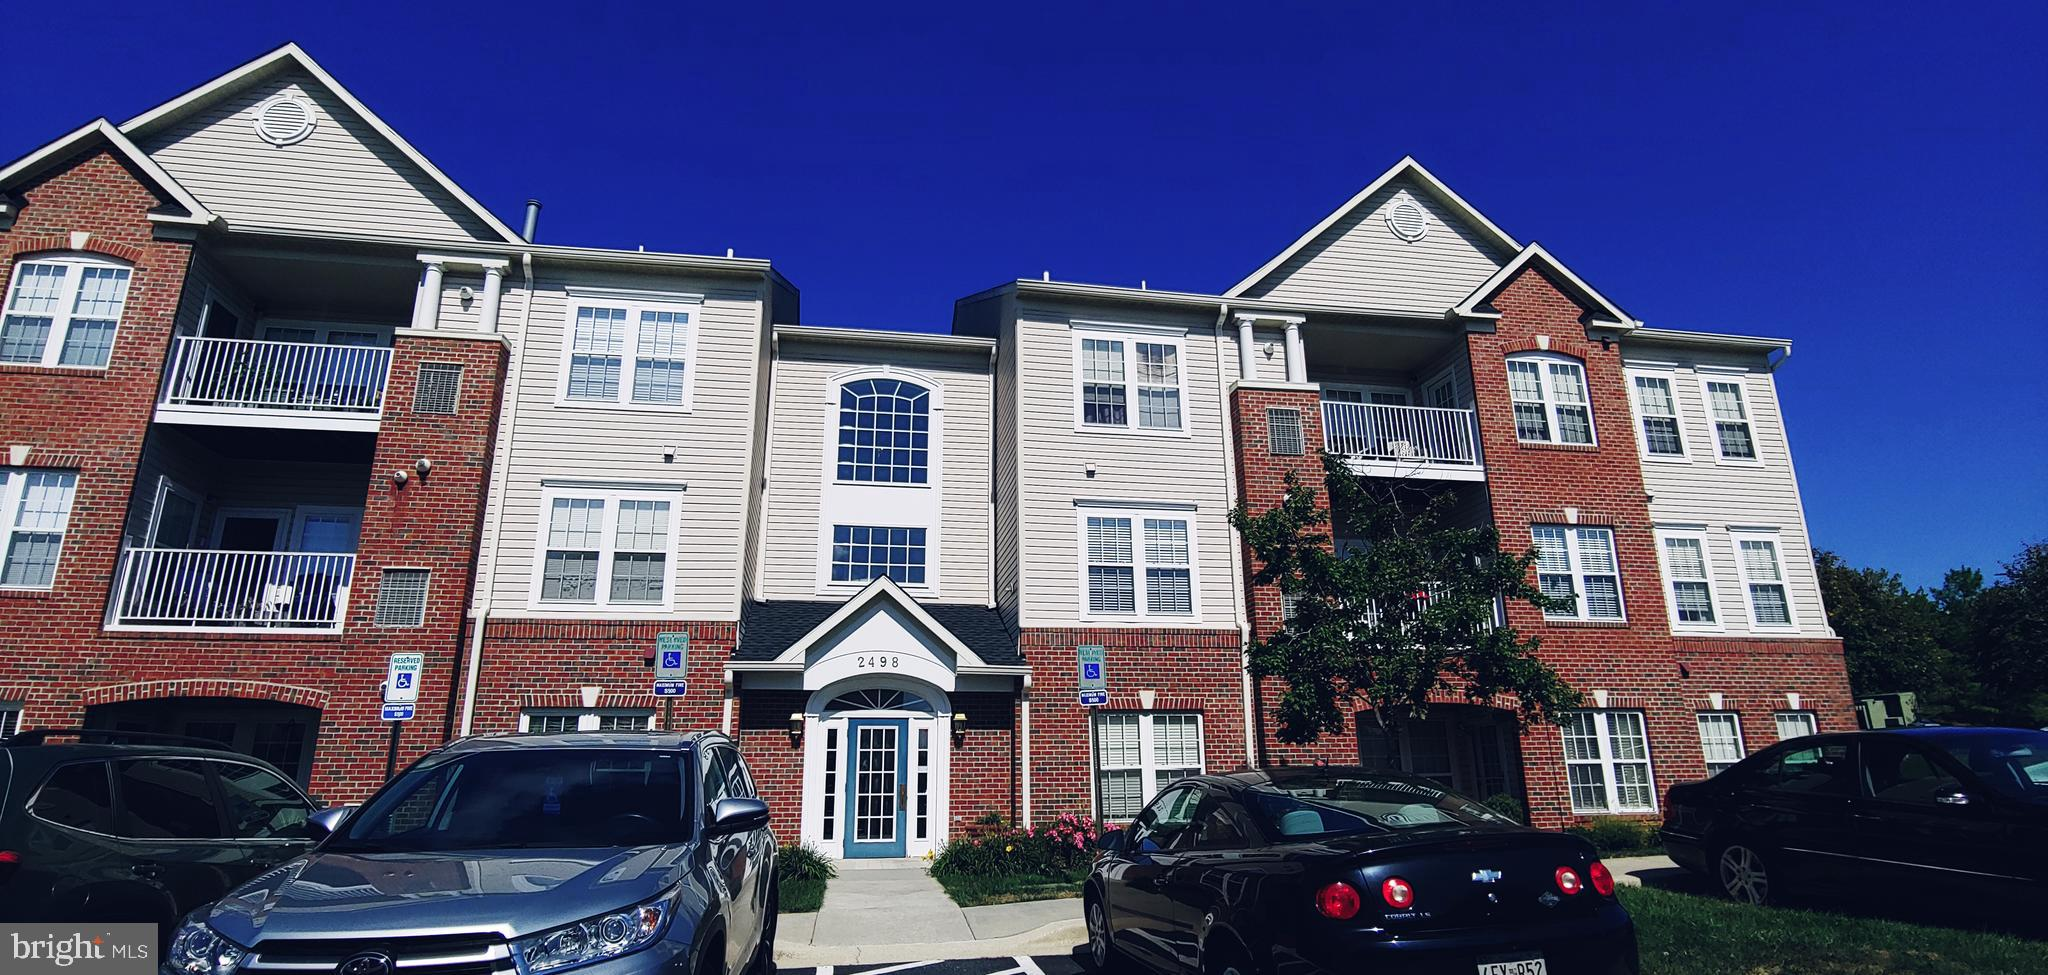 Double Suite Delight - 2BR 2BA GROUND LEVEL Condo!! ENJOY Stainless Steel appliances and gleaming wh